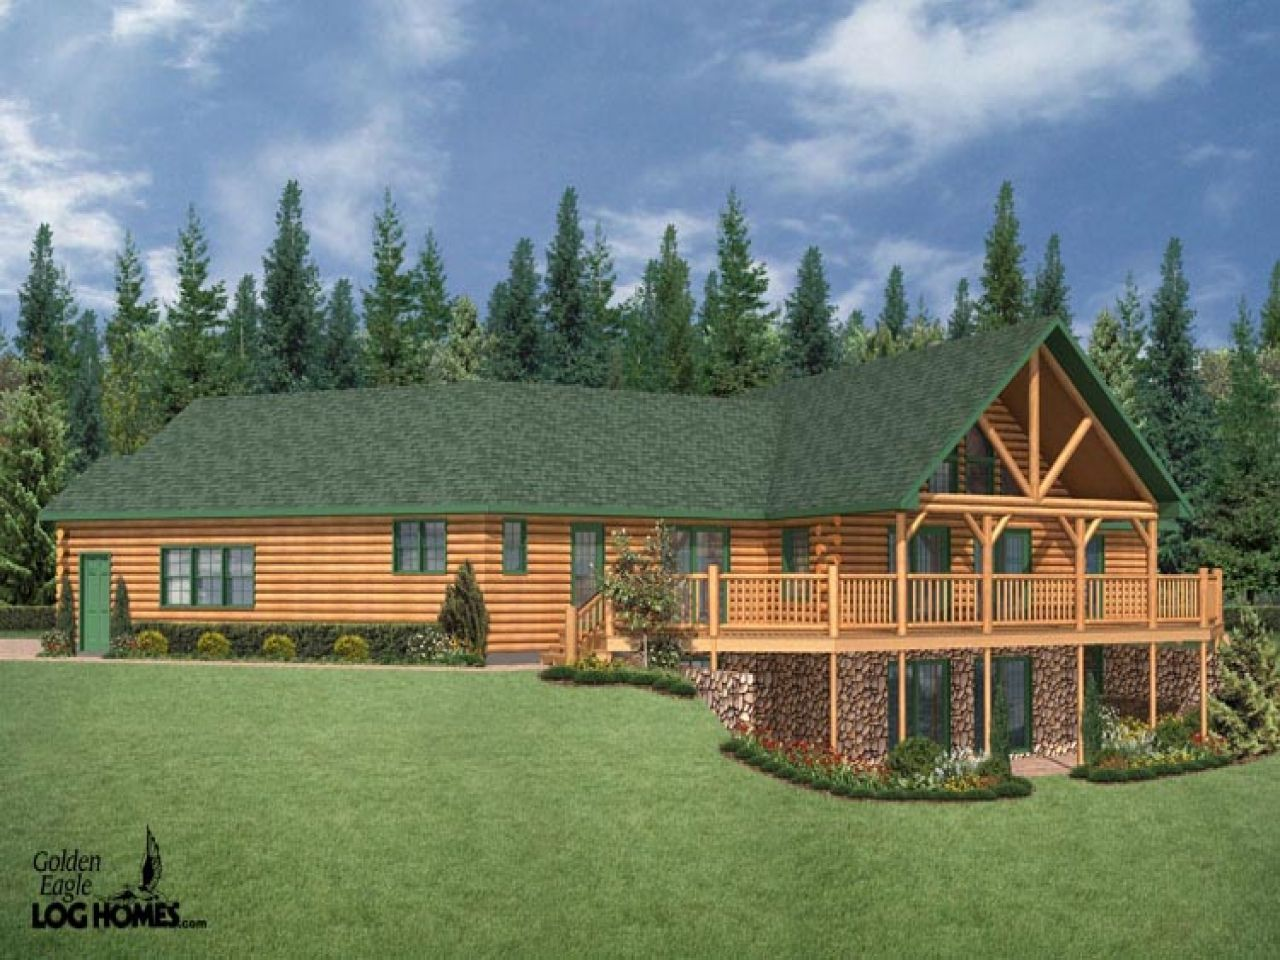 Style Log Homes Cabin Ranch Home Plans Modular Prices